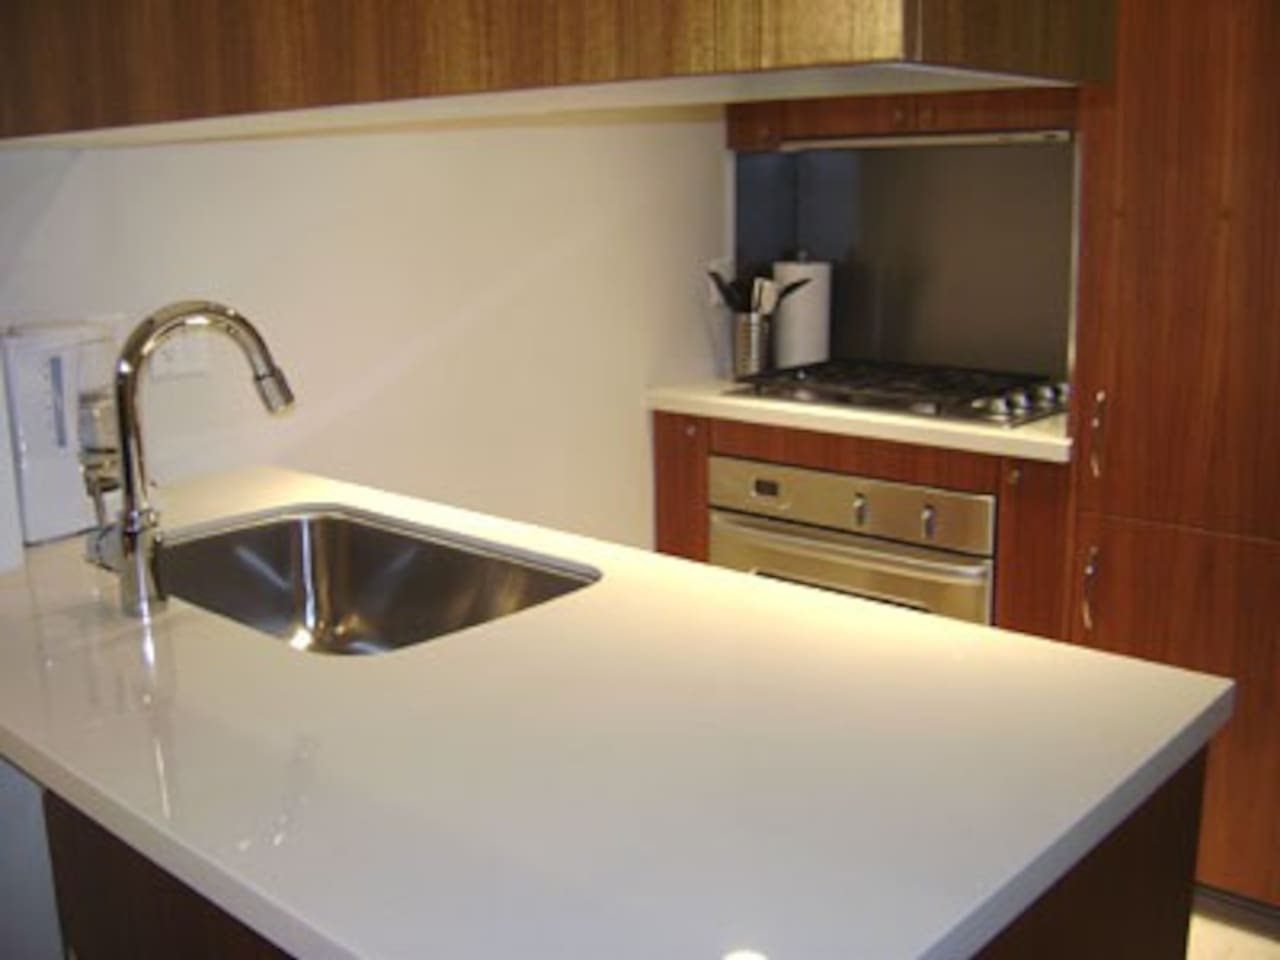 Very modern kitchen with gas stove and dishwasher